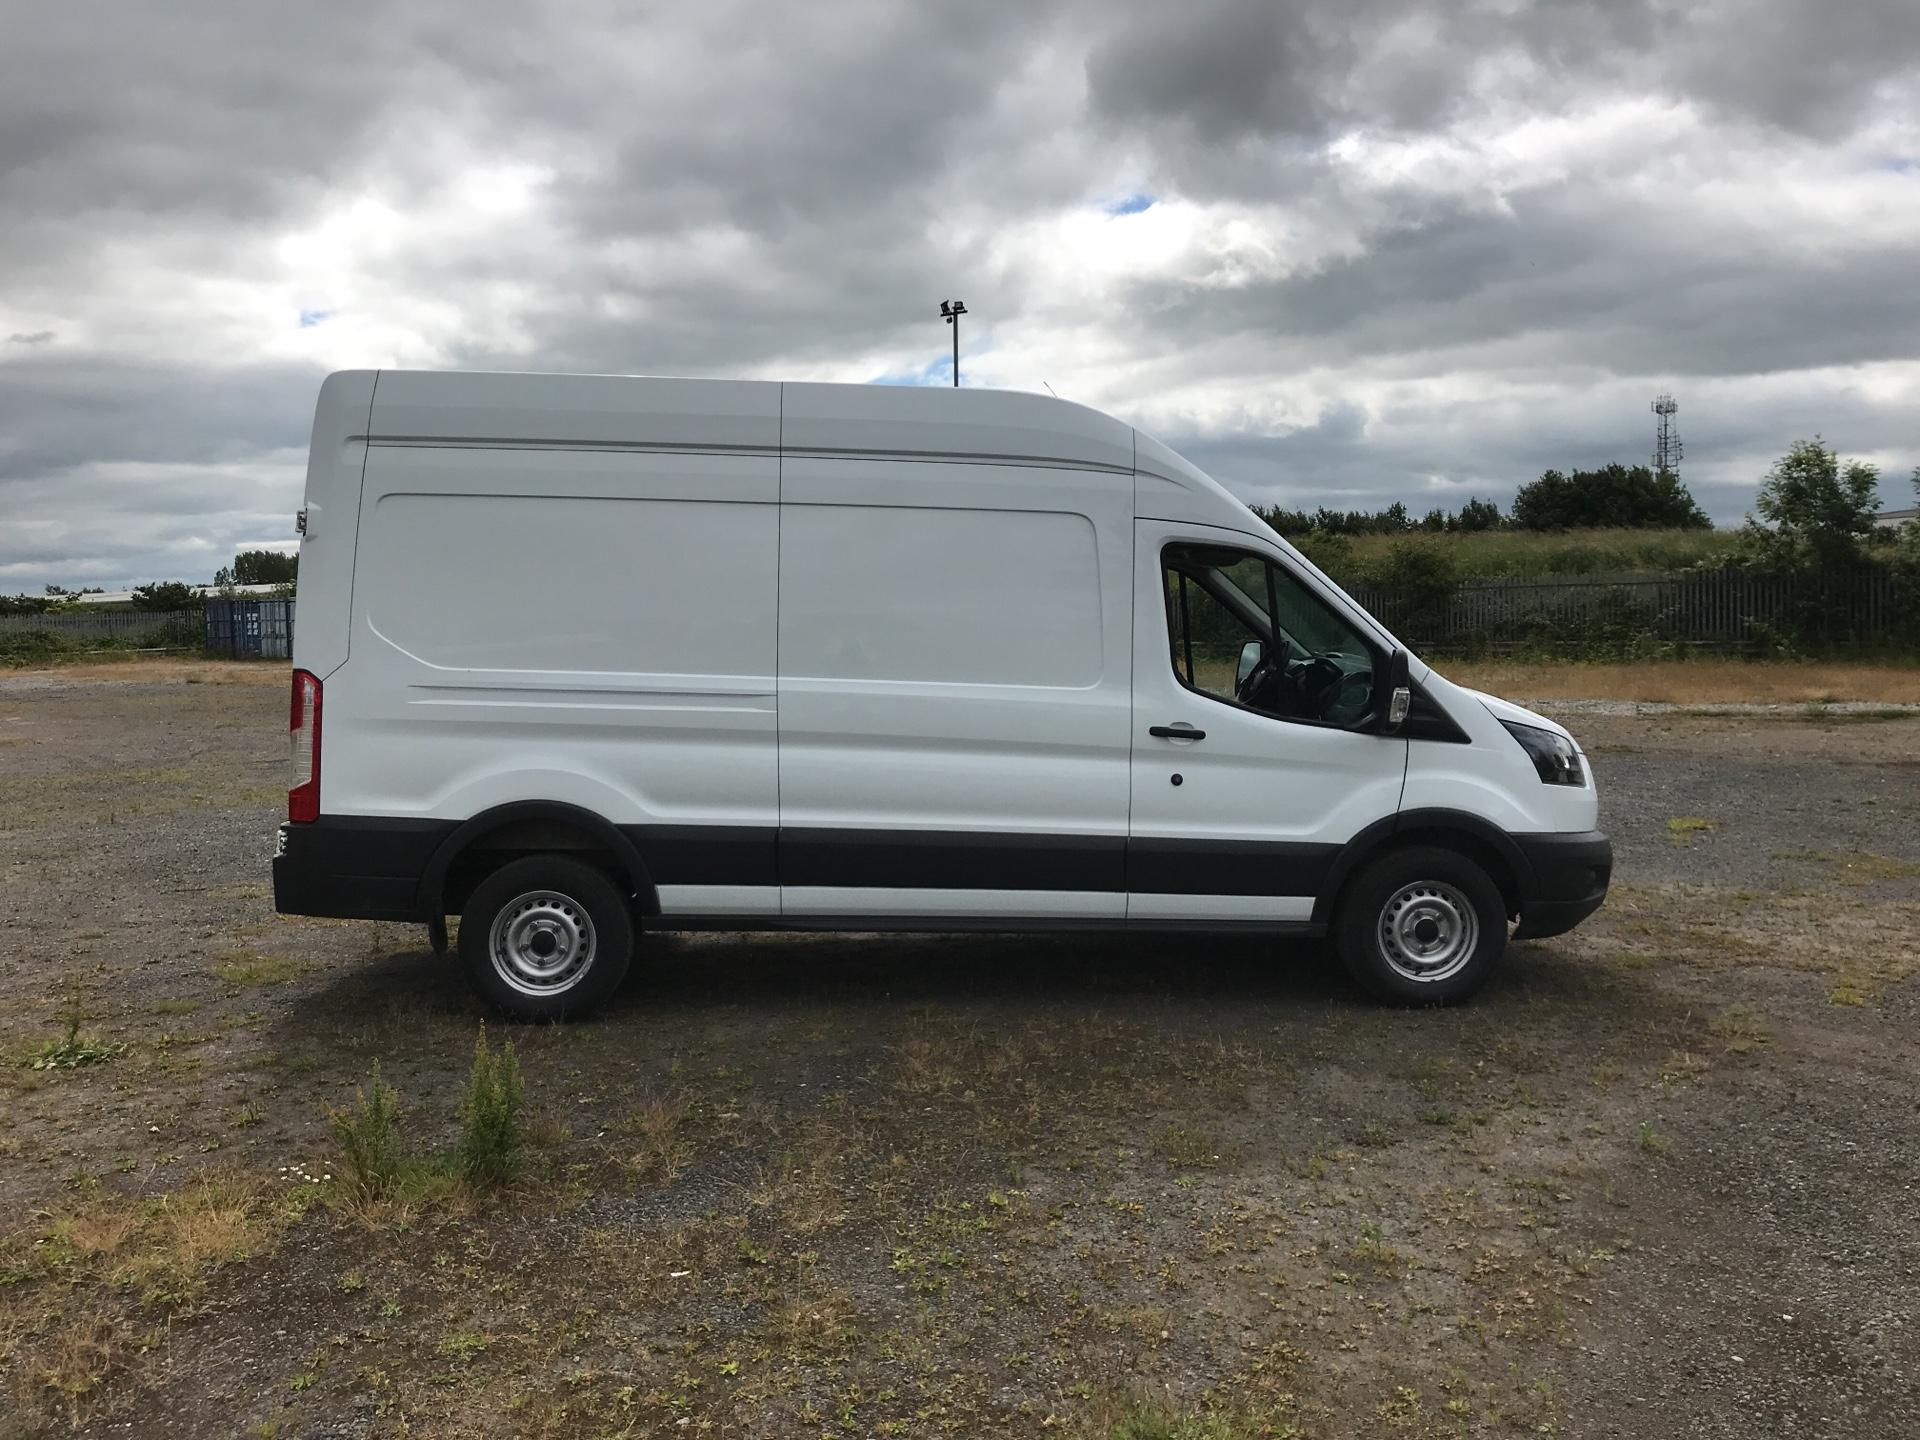 2017 Ford Transit 2.0 Tdci 130Ps H3 Van *VALUE RANGE VEHICLE CONDITION REFLECTED IN PRICE* (FL17VUW) Image 2